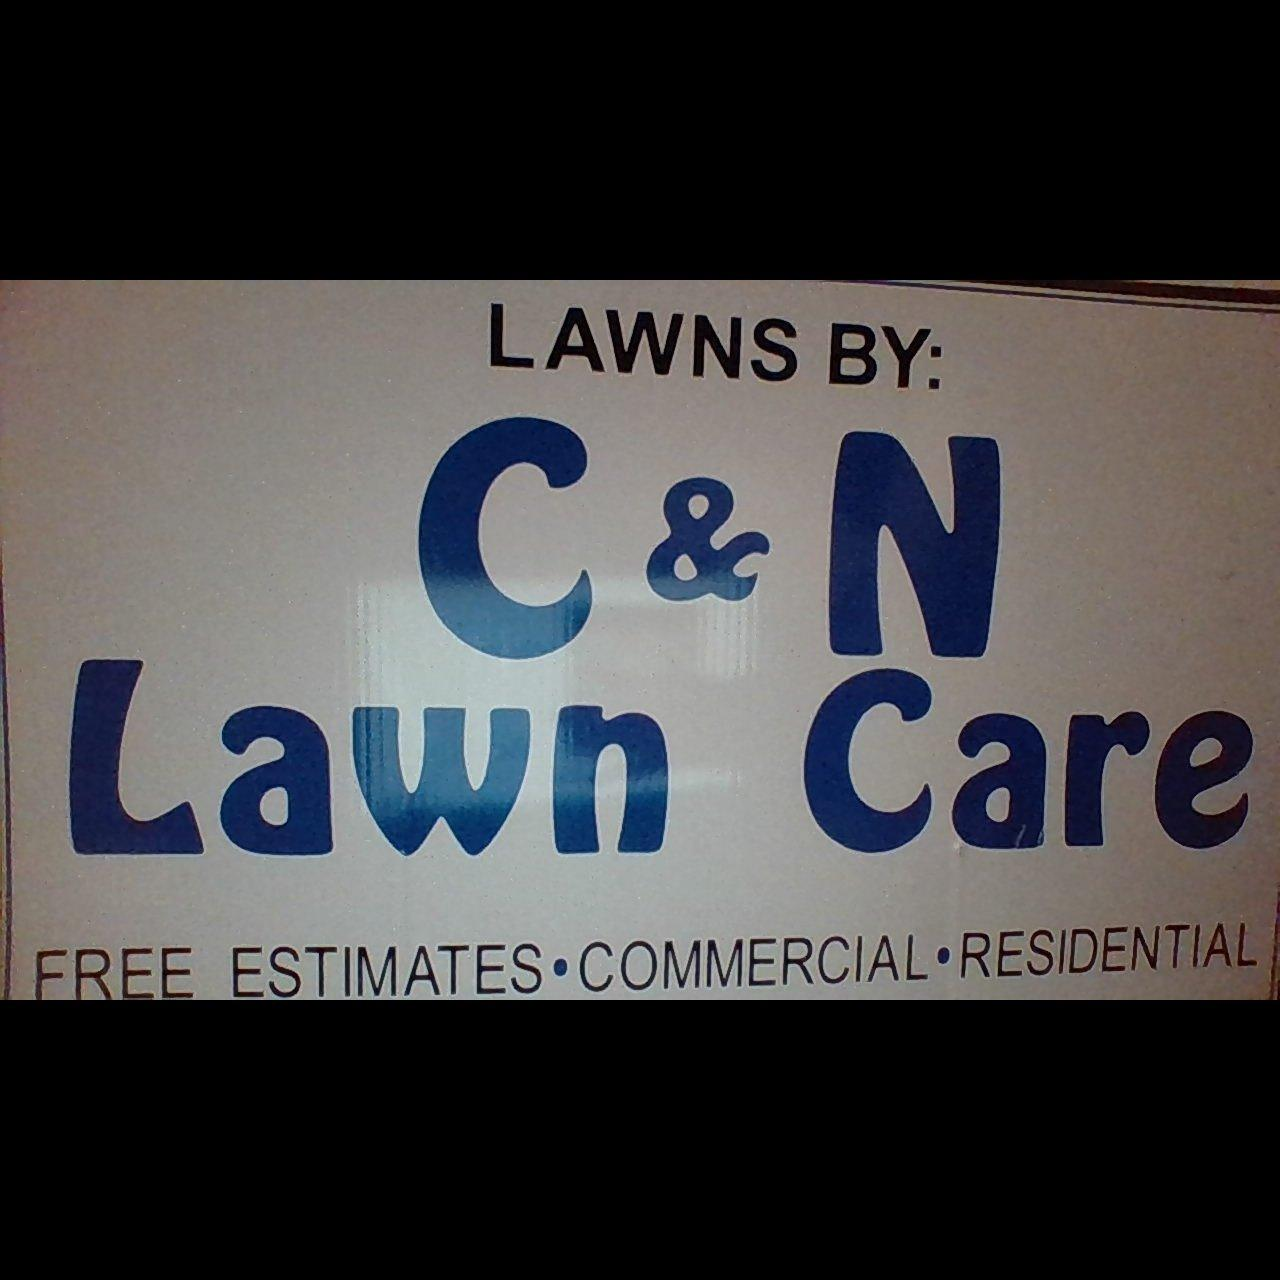 Landscape Designer in MI Three Rivers 49093 C&N Lawn Care 1020 8th St  (269)535-3940